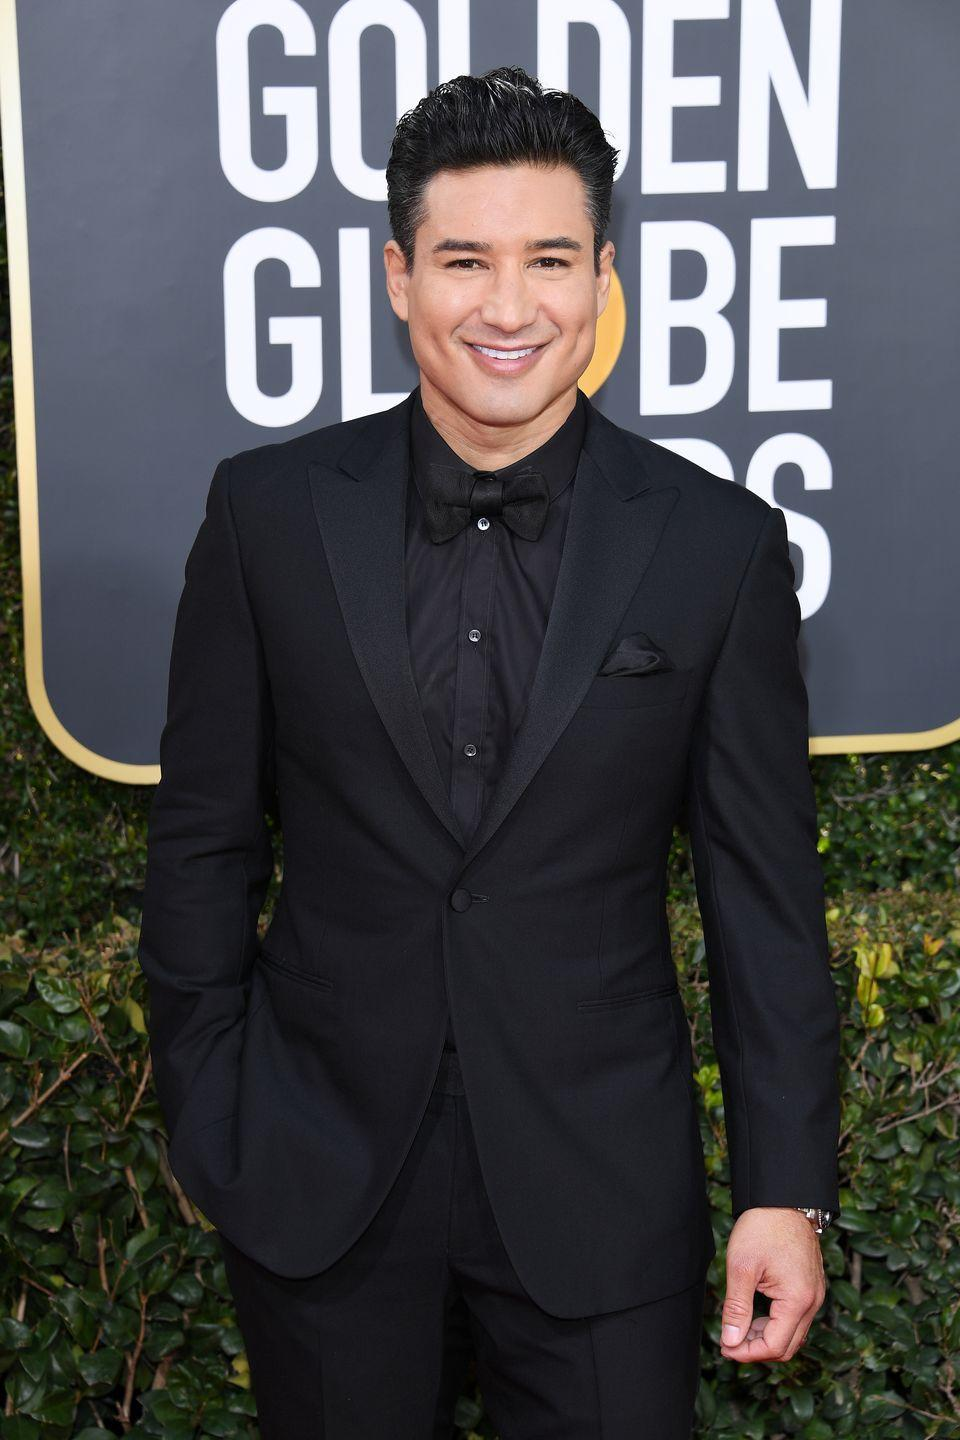 <p>Mario has pivoted from acting to hosting and has been an anchor on <em>Extra</em> since 2008. Same ol' dimples tho. </p>